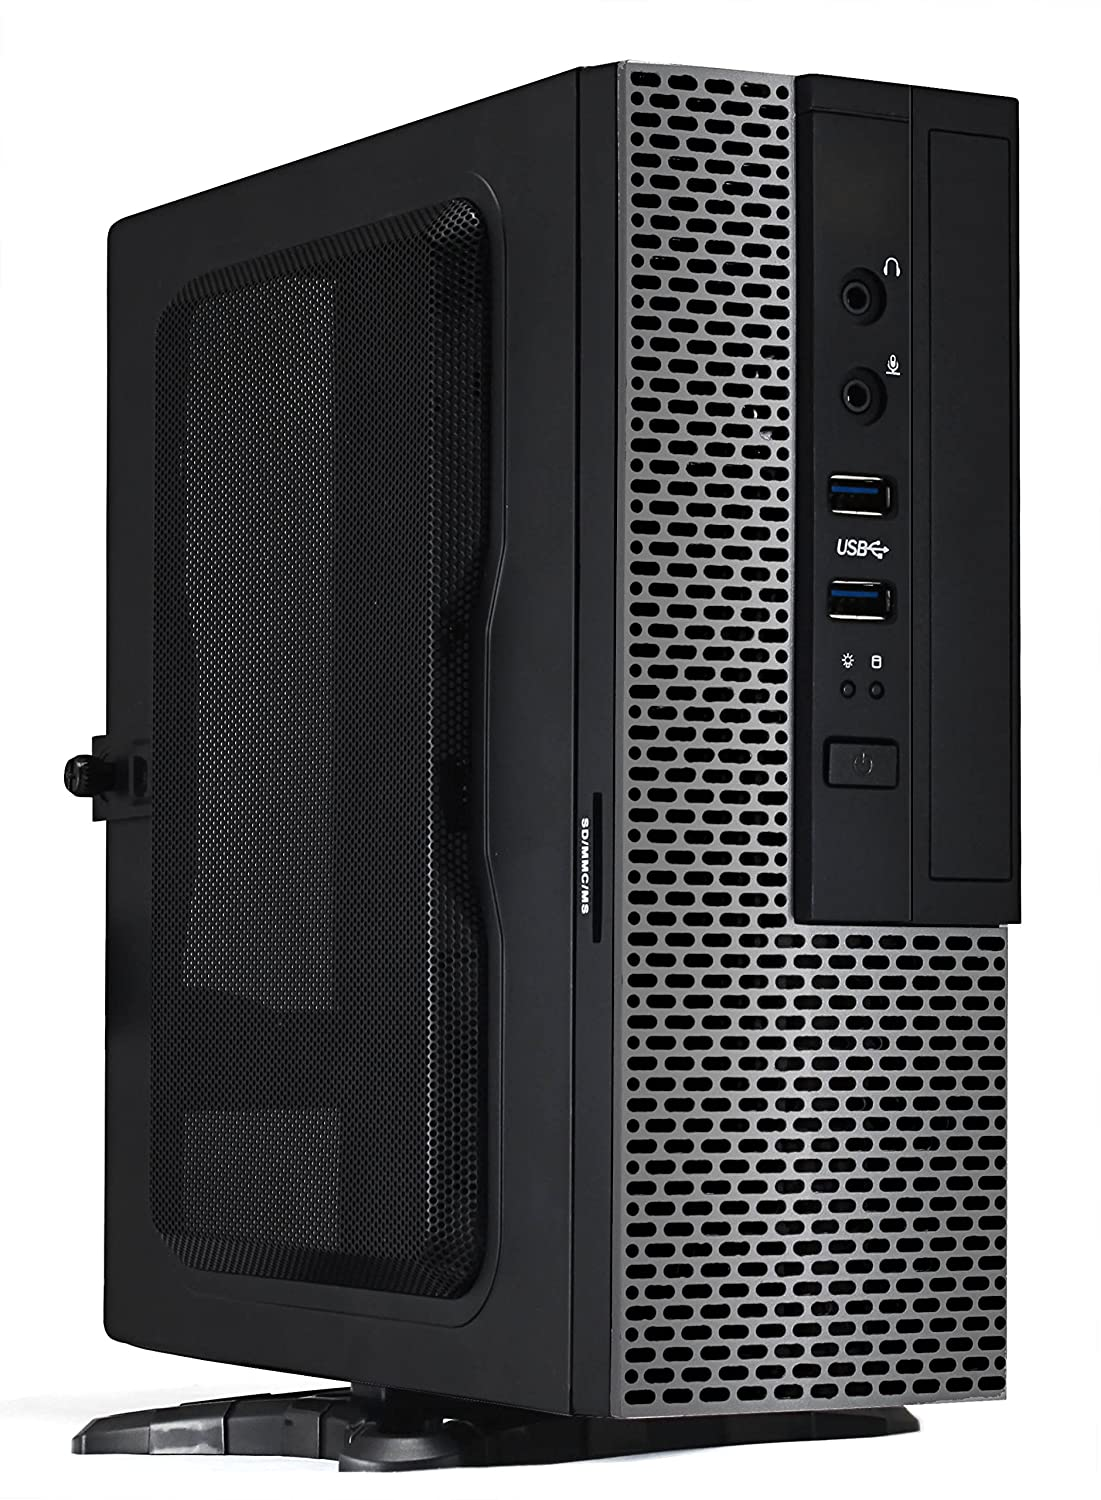 CoolBox IT05 Torre - Caja de ordenador (180W, PC, Mini-ITX, RoHs), Negro: Coolbox: Amazon.es: Informática